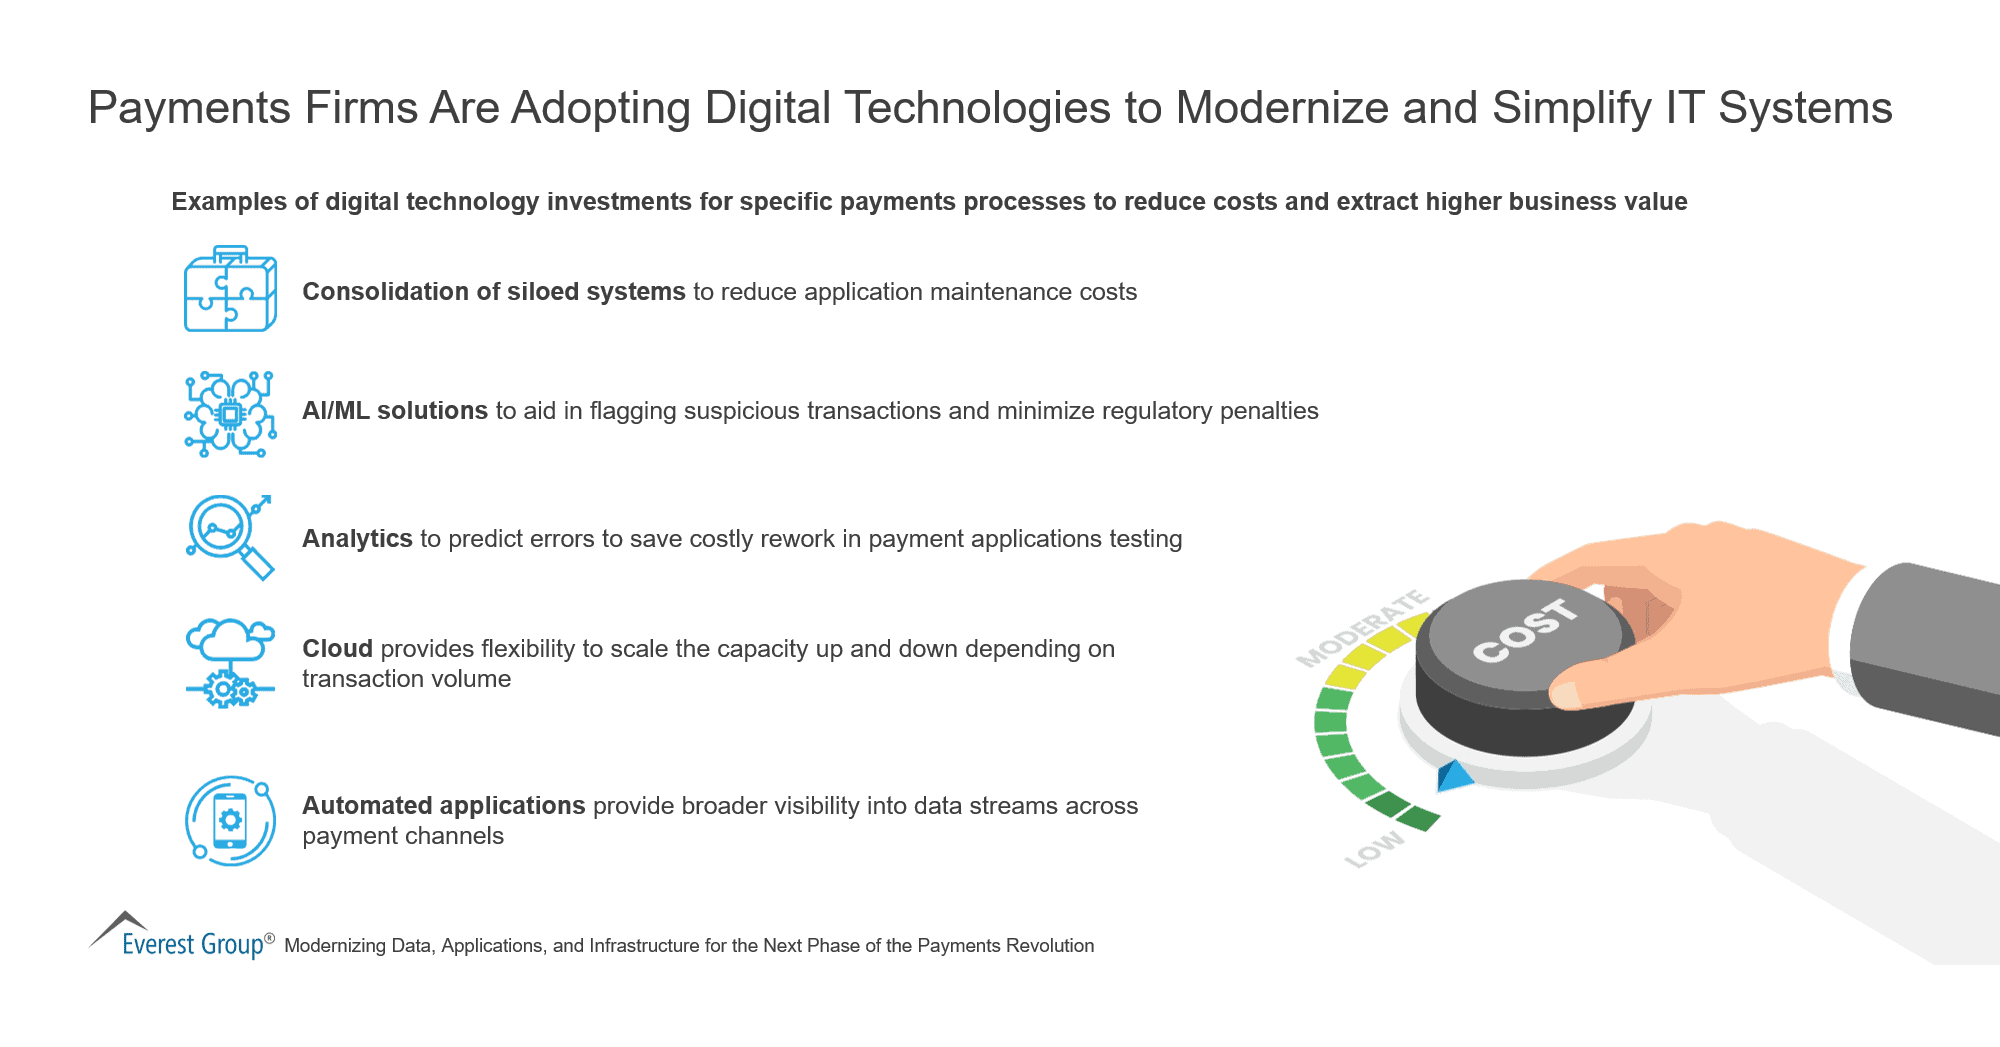 Payments Firms Are Adopting Digital Technologies to Modernize and Simplify IT Systems